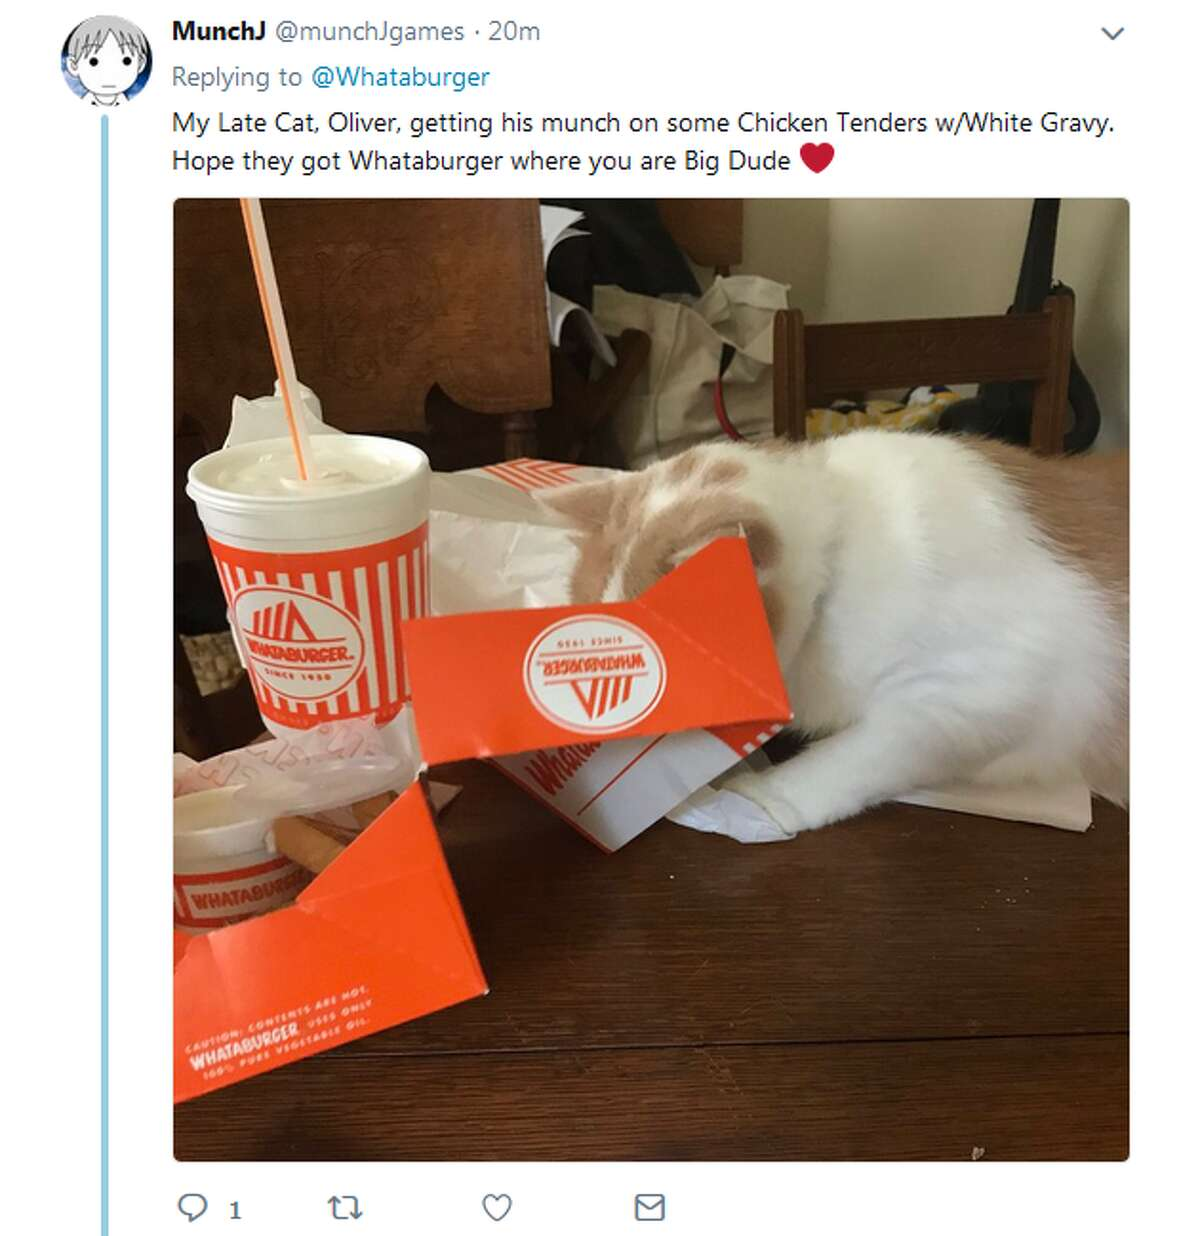 @munchJgames: My Late Cat, Oliver, getting his munch on some Chicken Tenders w/White Gravy. Hope they got Whataburger where you are Big Dude